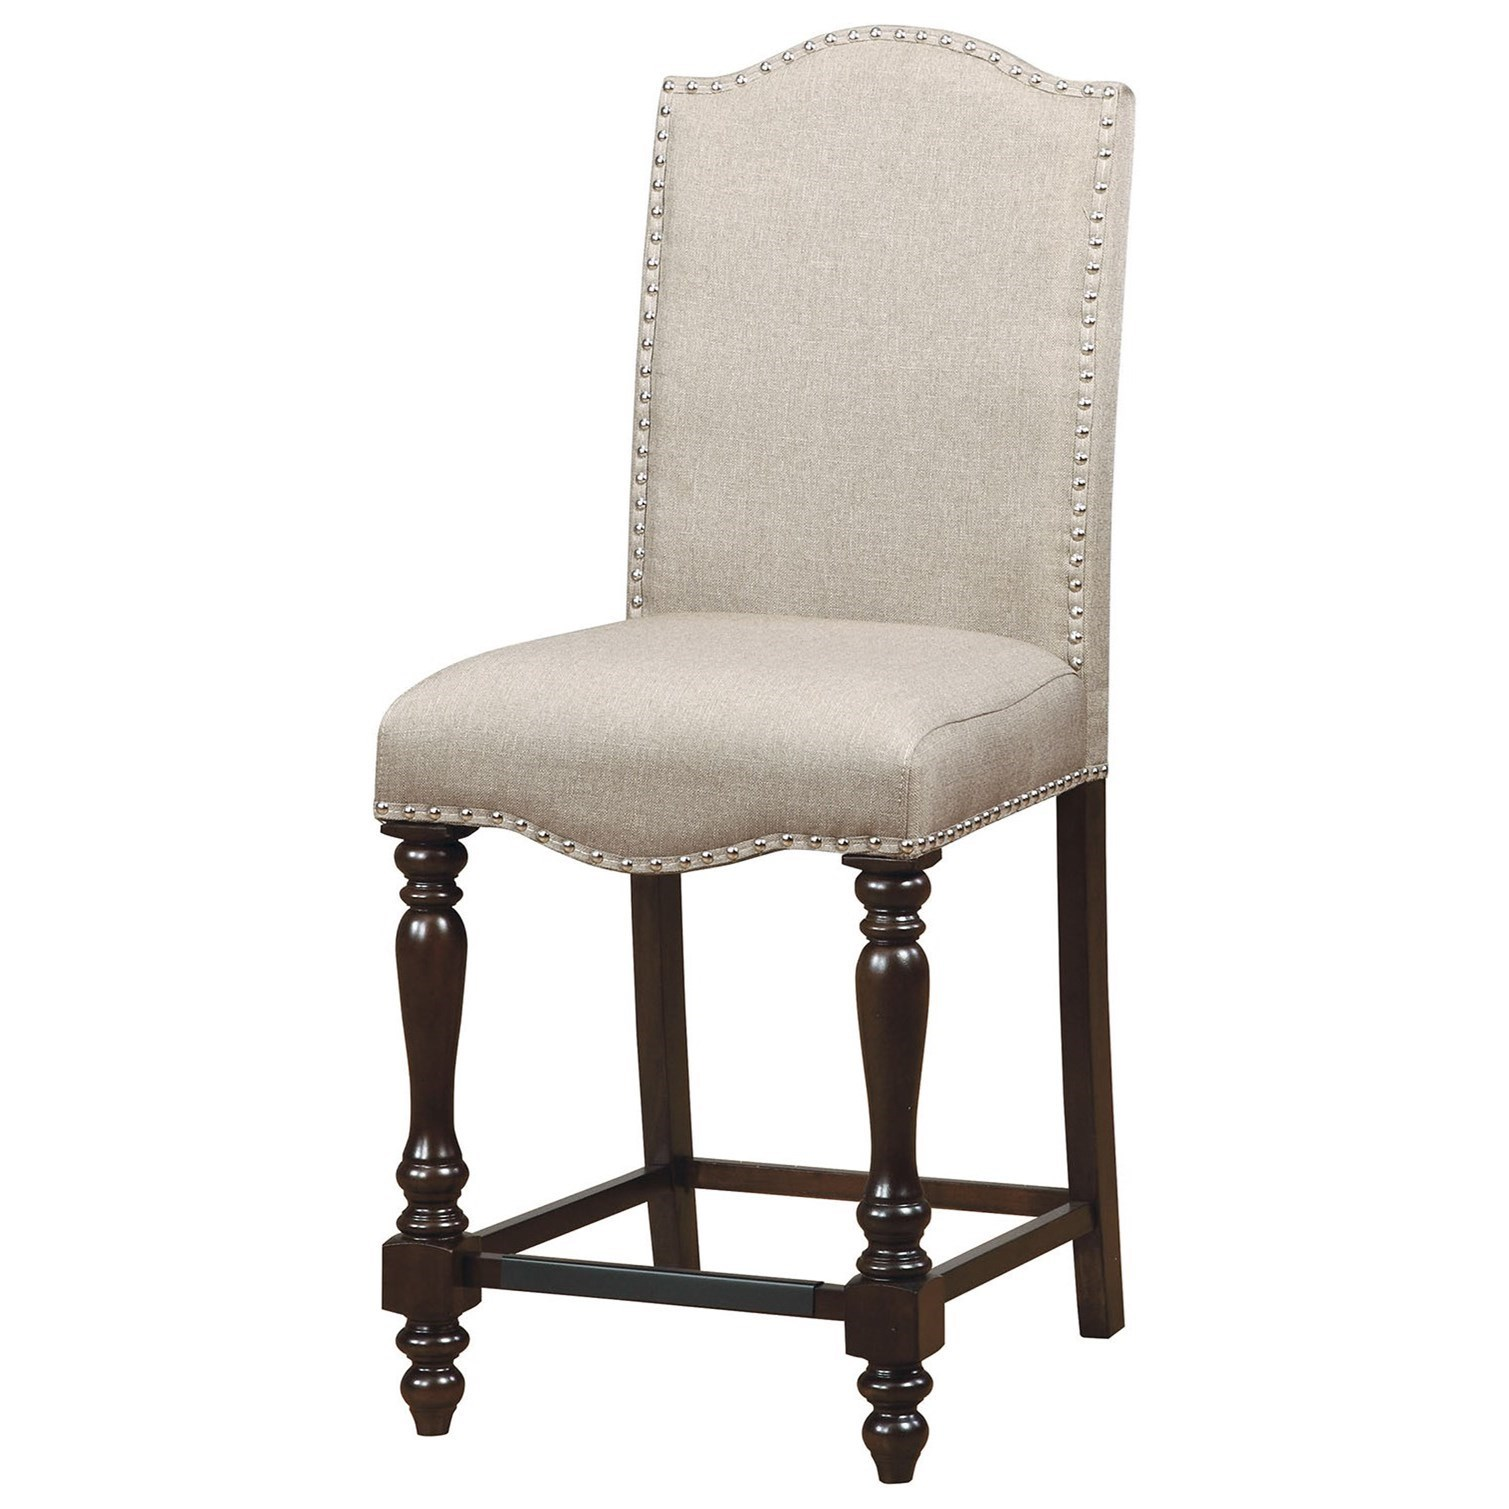 upholstered counter chairs neutral posture renati chair furniture of america hurdsfield set 2 height with nailhead trim